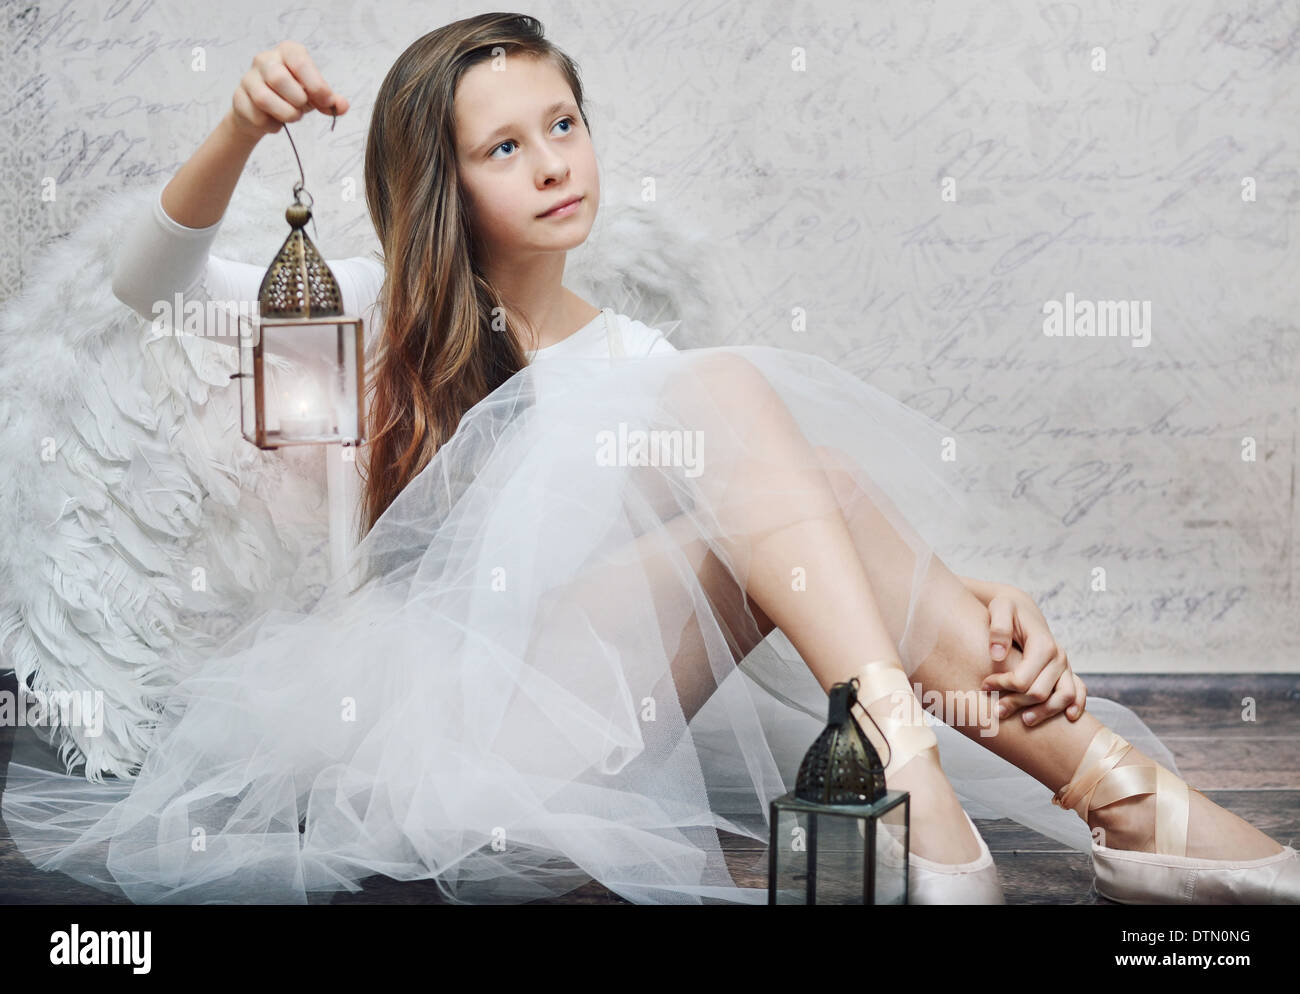 Art photo of young ballet dancer with retro lamp - Stock Image